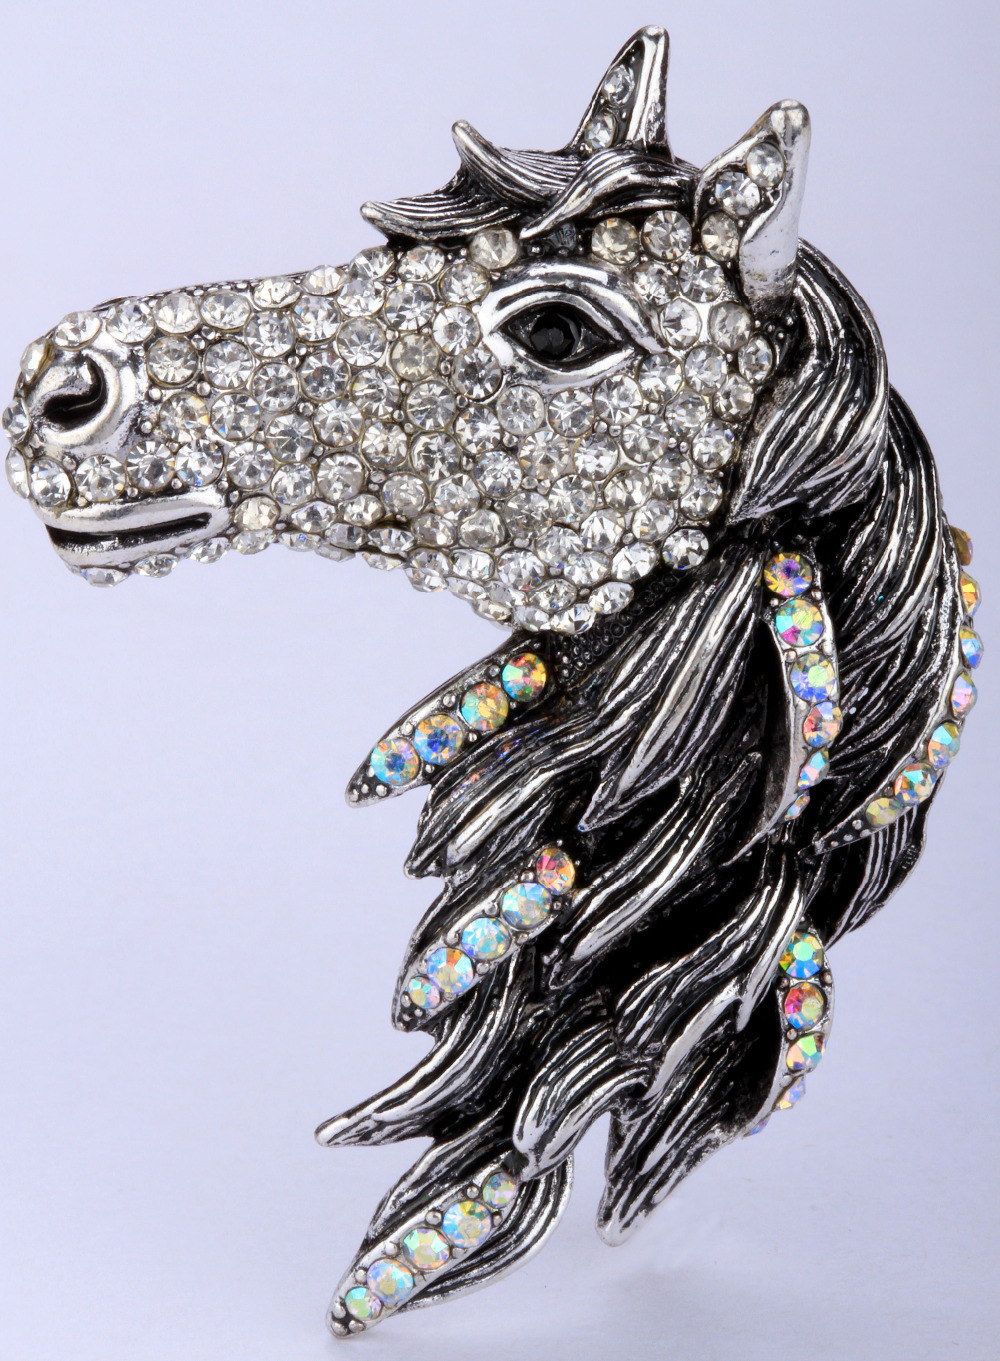 Horse brooch pin pendant for women girls crystal jewelry animal charm 2015 top fashion gold silver plated BA17(China (Mainland))